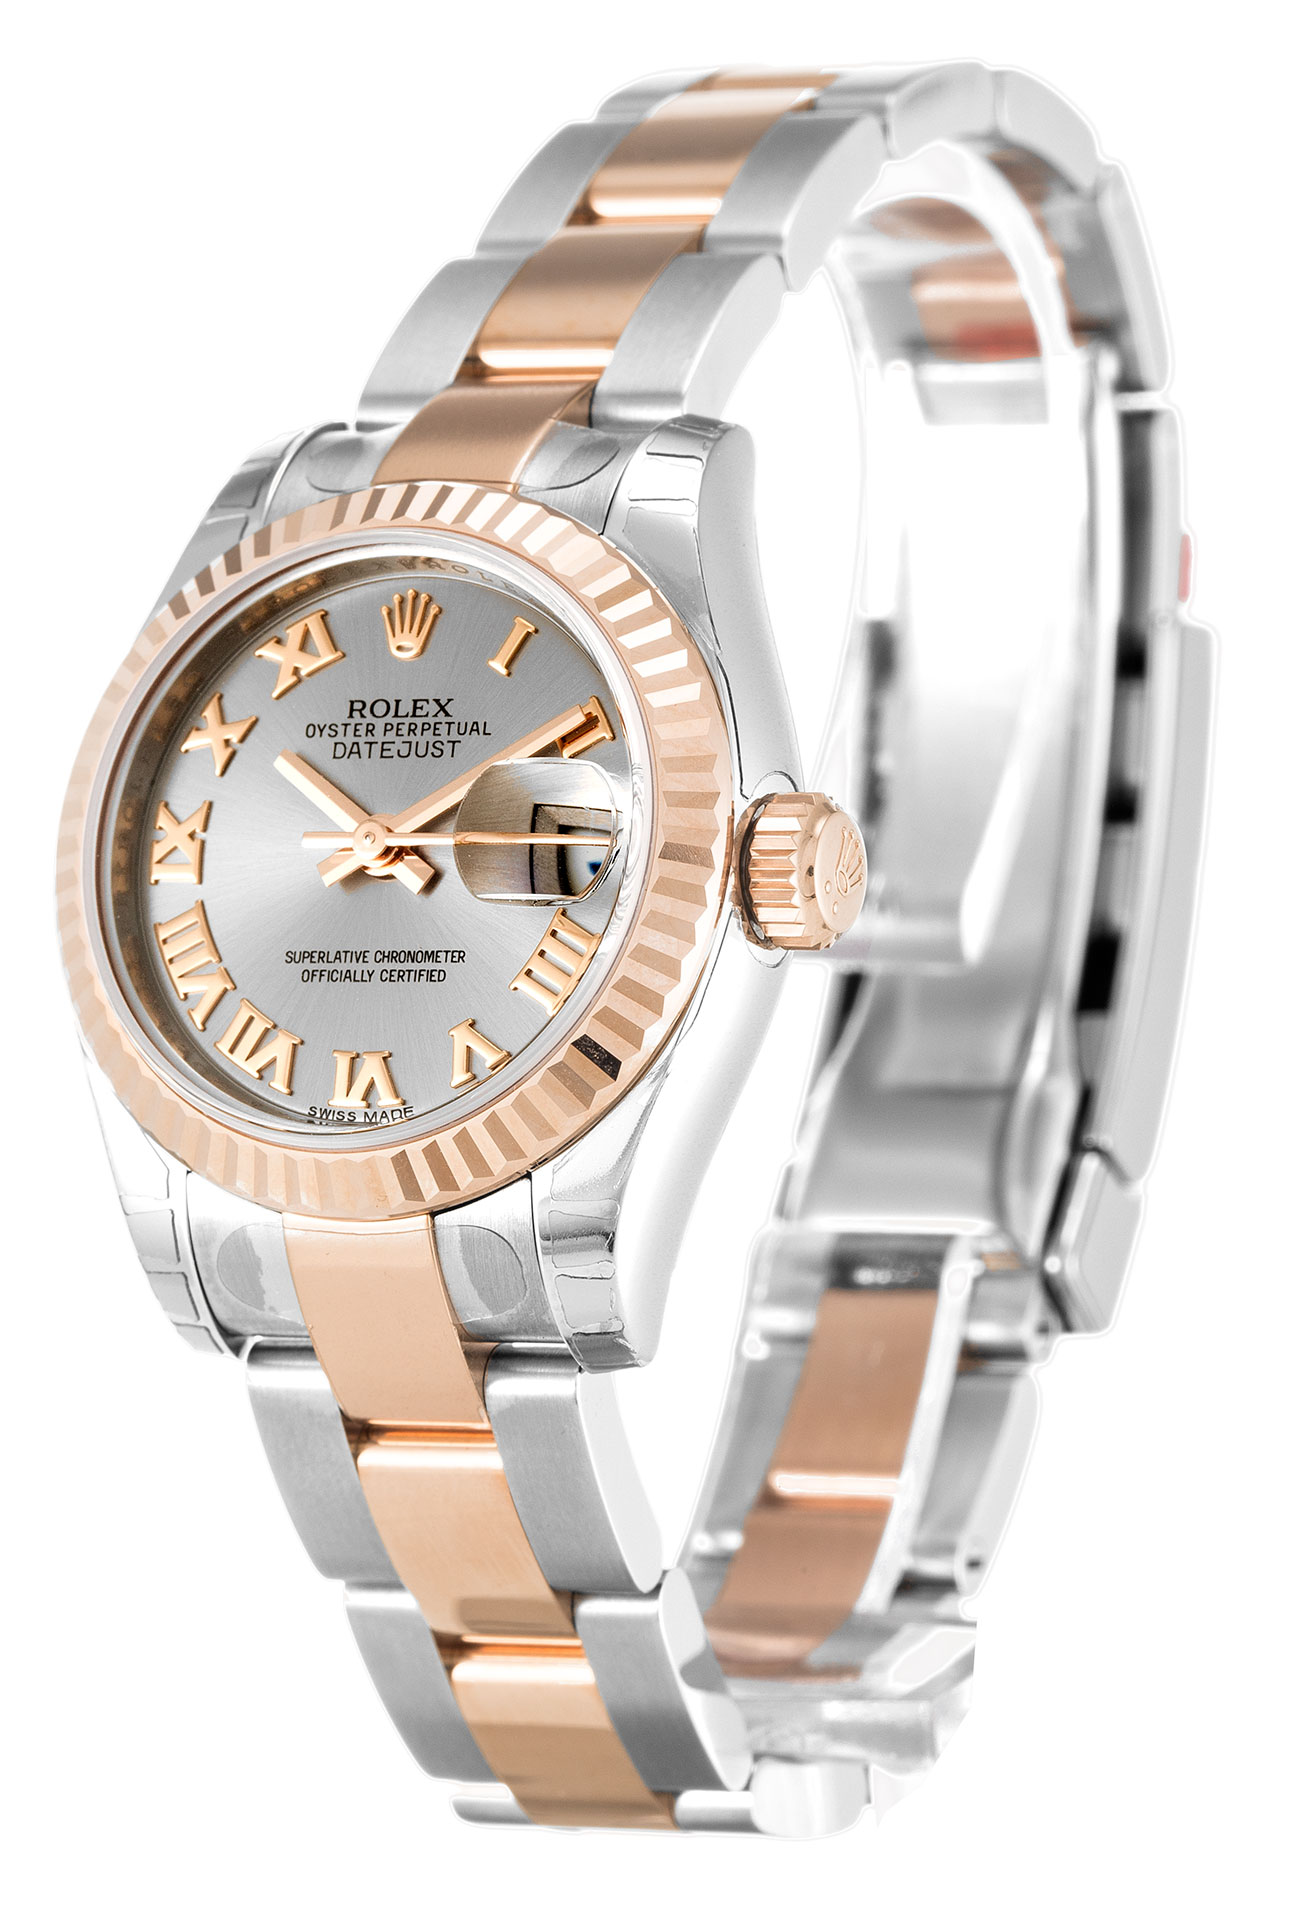 pin price rs starts watches lowest cheap india amazon at online buy for branded